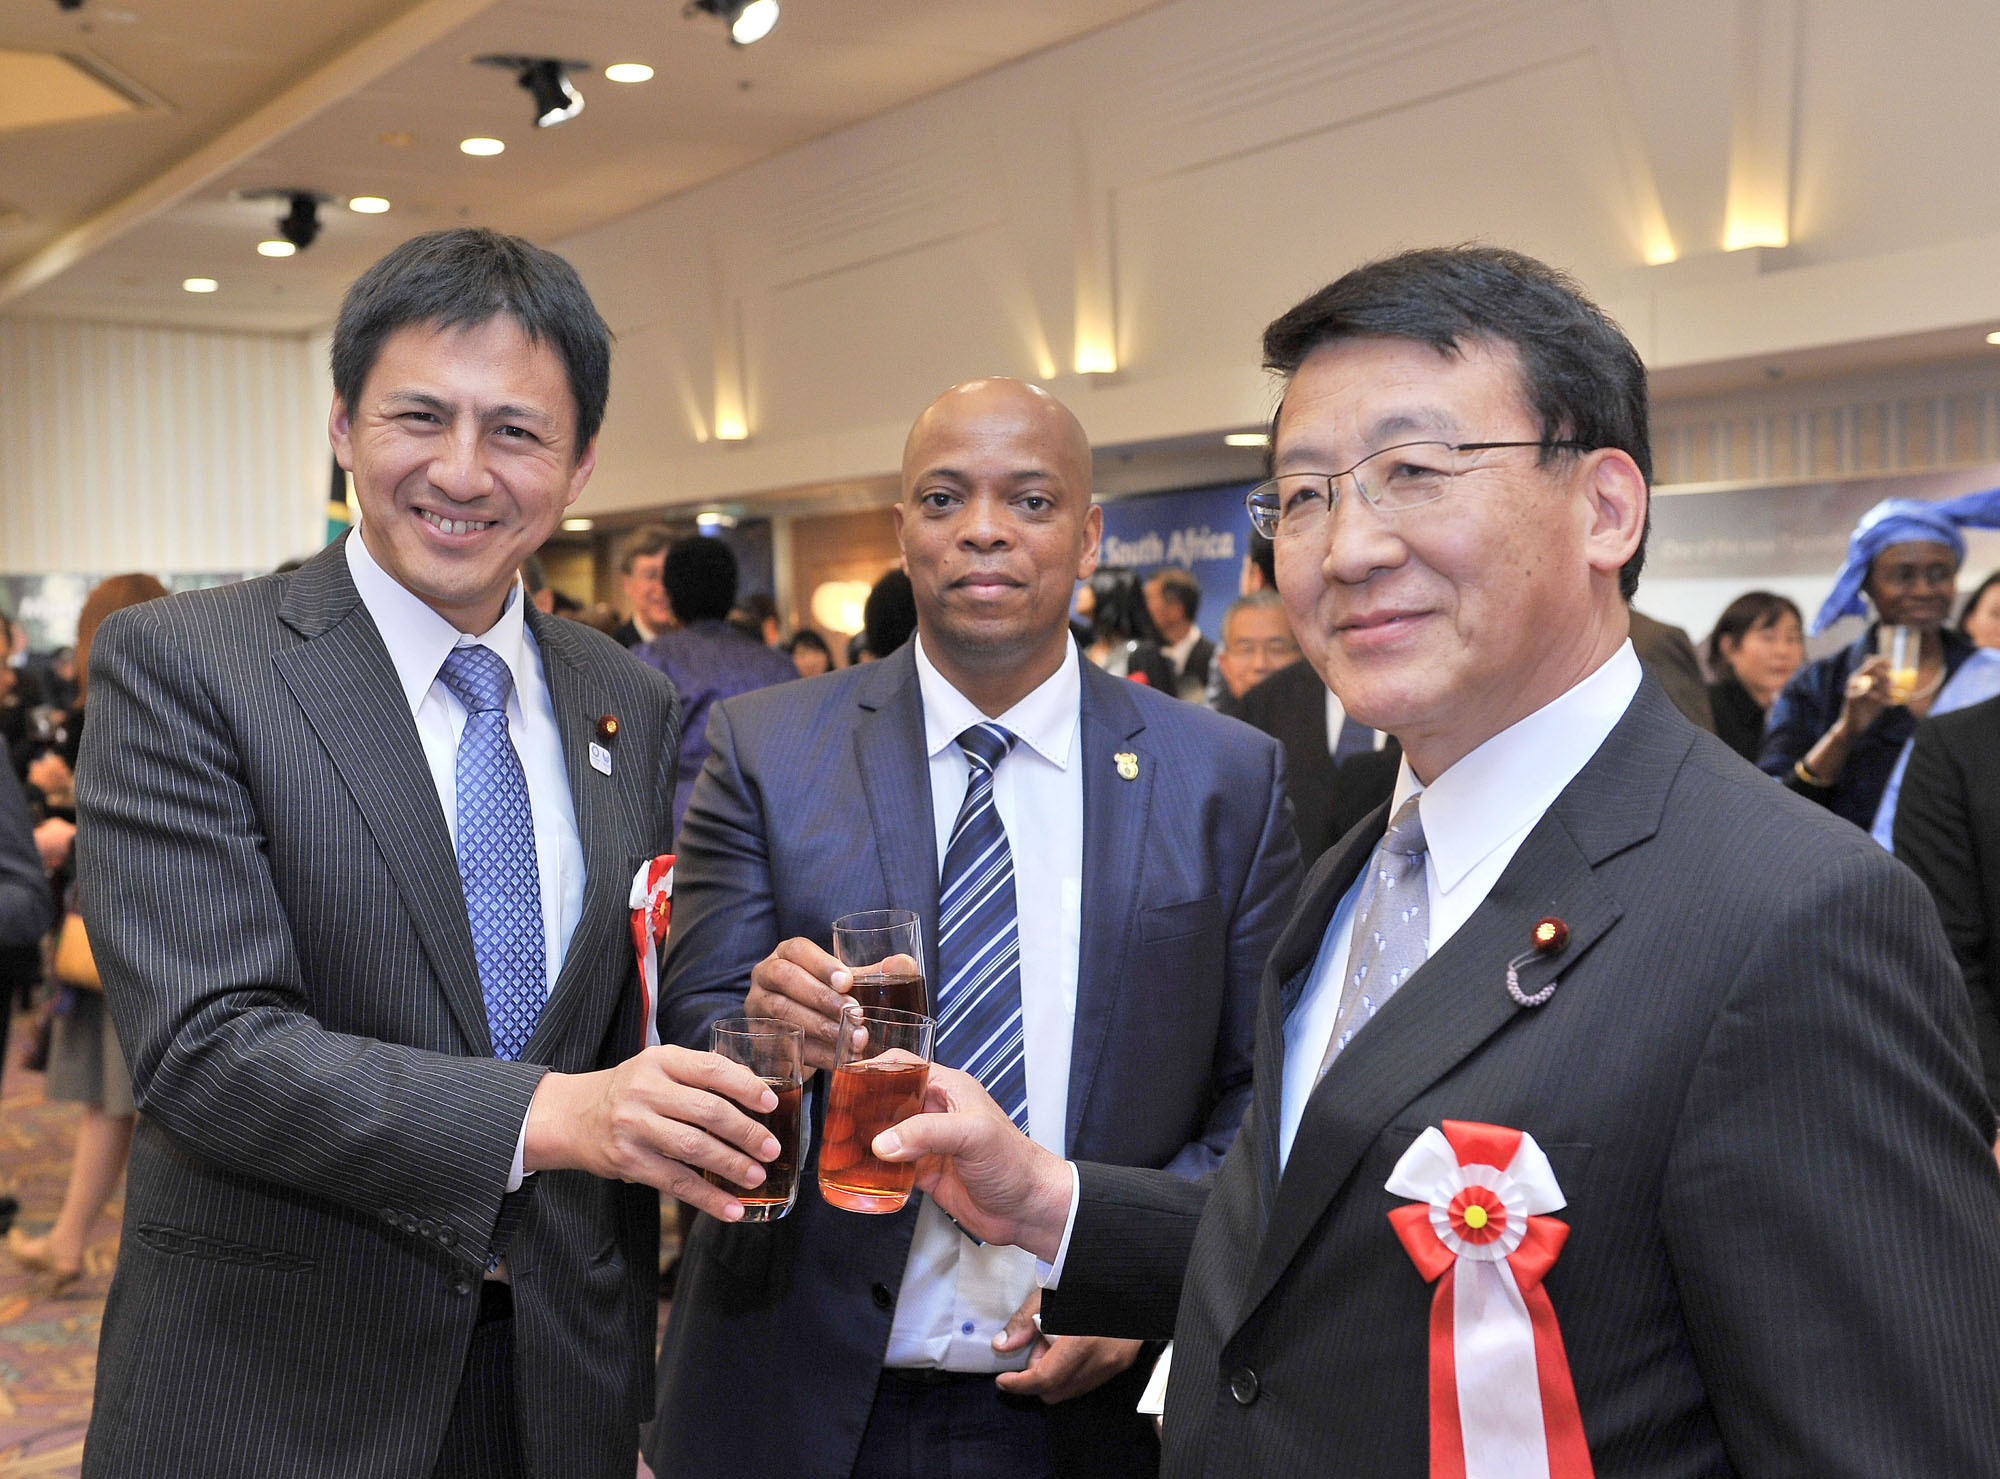 Toast masters: Royce Kuzwayo (center), charge d'affaires of the Republic of South Africa raises his glass with Shunsuke Takei (left), parliamentary vice-minister for Foreign Affairs, and Asahiko Mihara (right), acting chairperson of the Japan-African Union Parliamentary Friendship Association, during a reception celebrating South Africa's Freedom Day at Hotel Okura Tokyo on April 26. |  YOSHIAKI MIURA